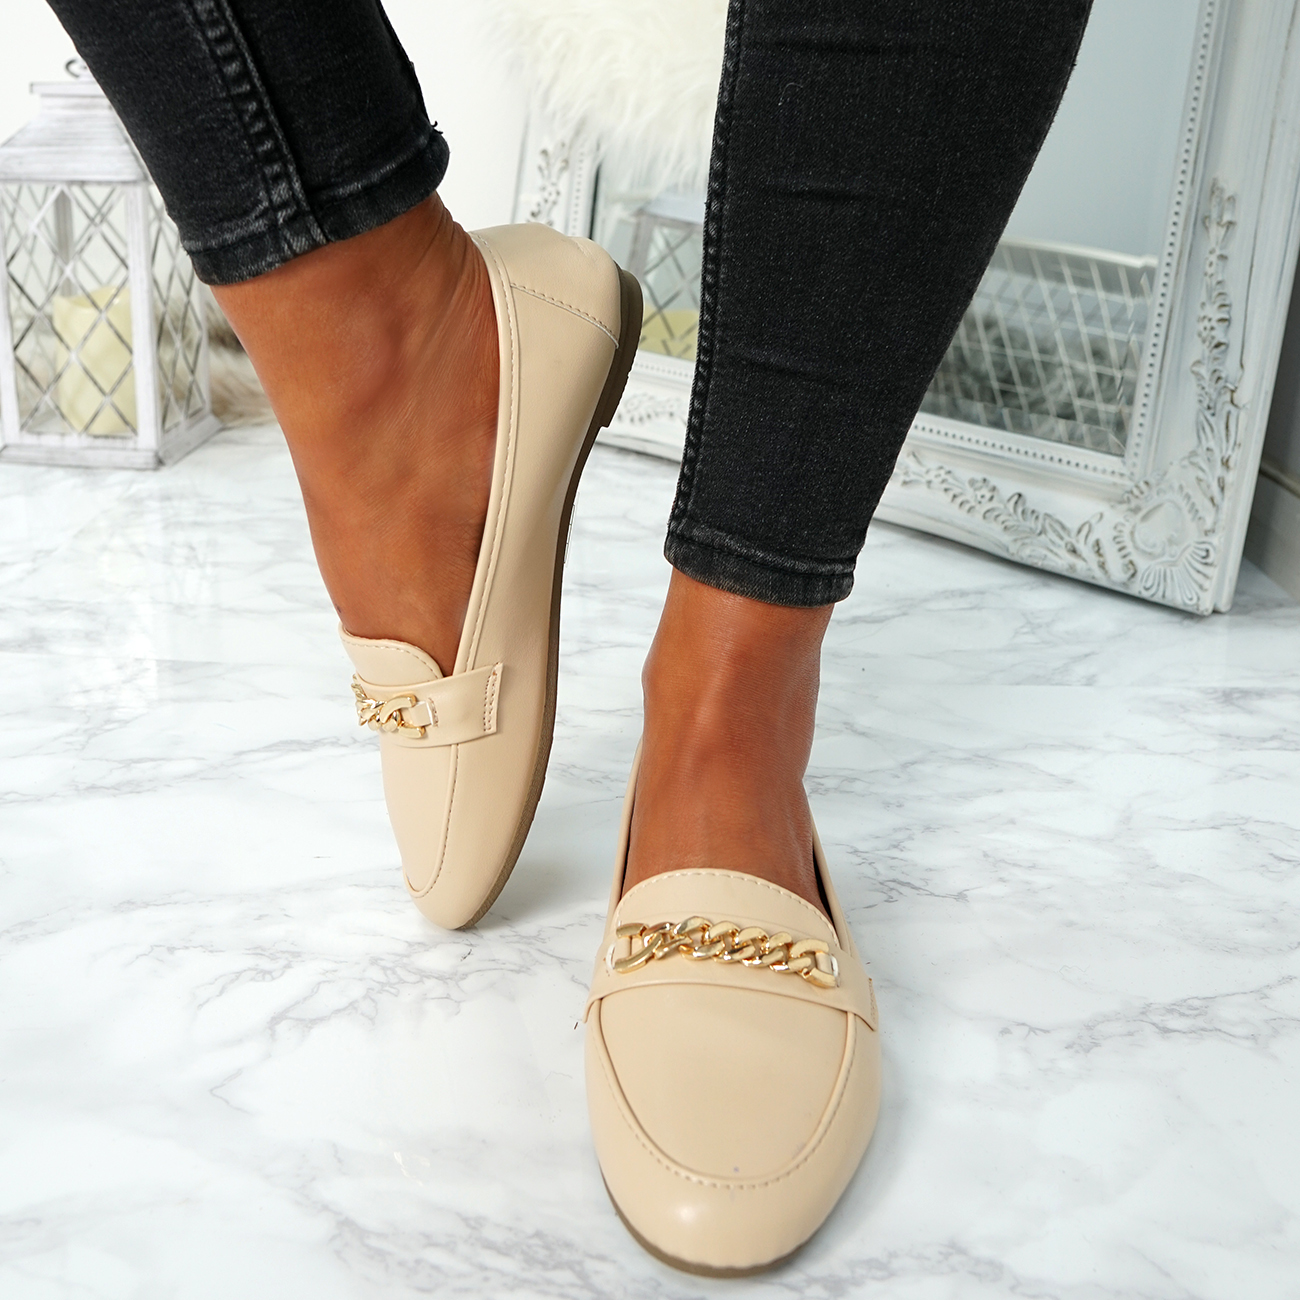 WOMENS-LADIES-CHAIN-SLIP-ON-BALLERINA-LOAFERS-BALLET-DOLLY-PUMPS-SHOES-SIZE thumbnail 7